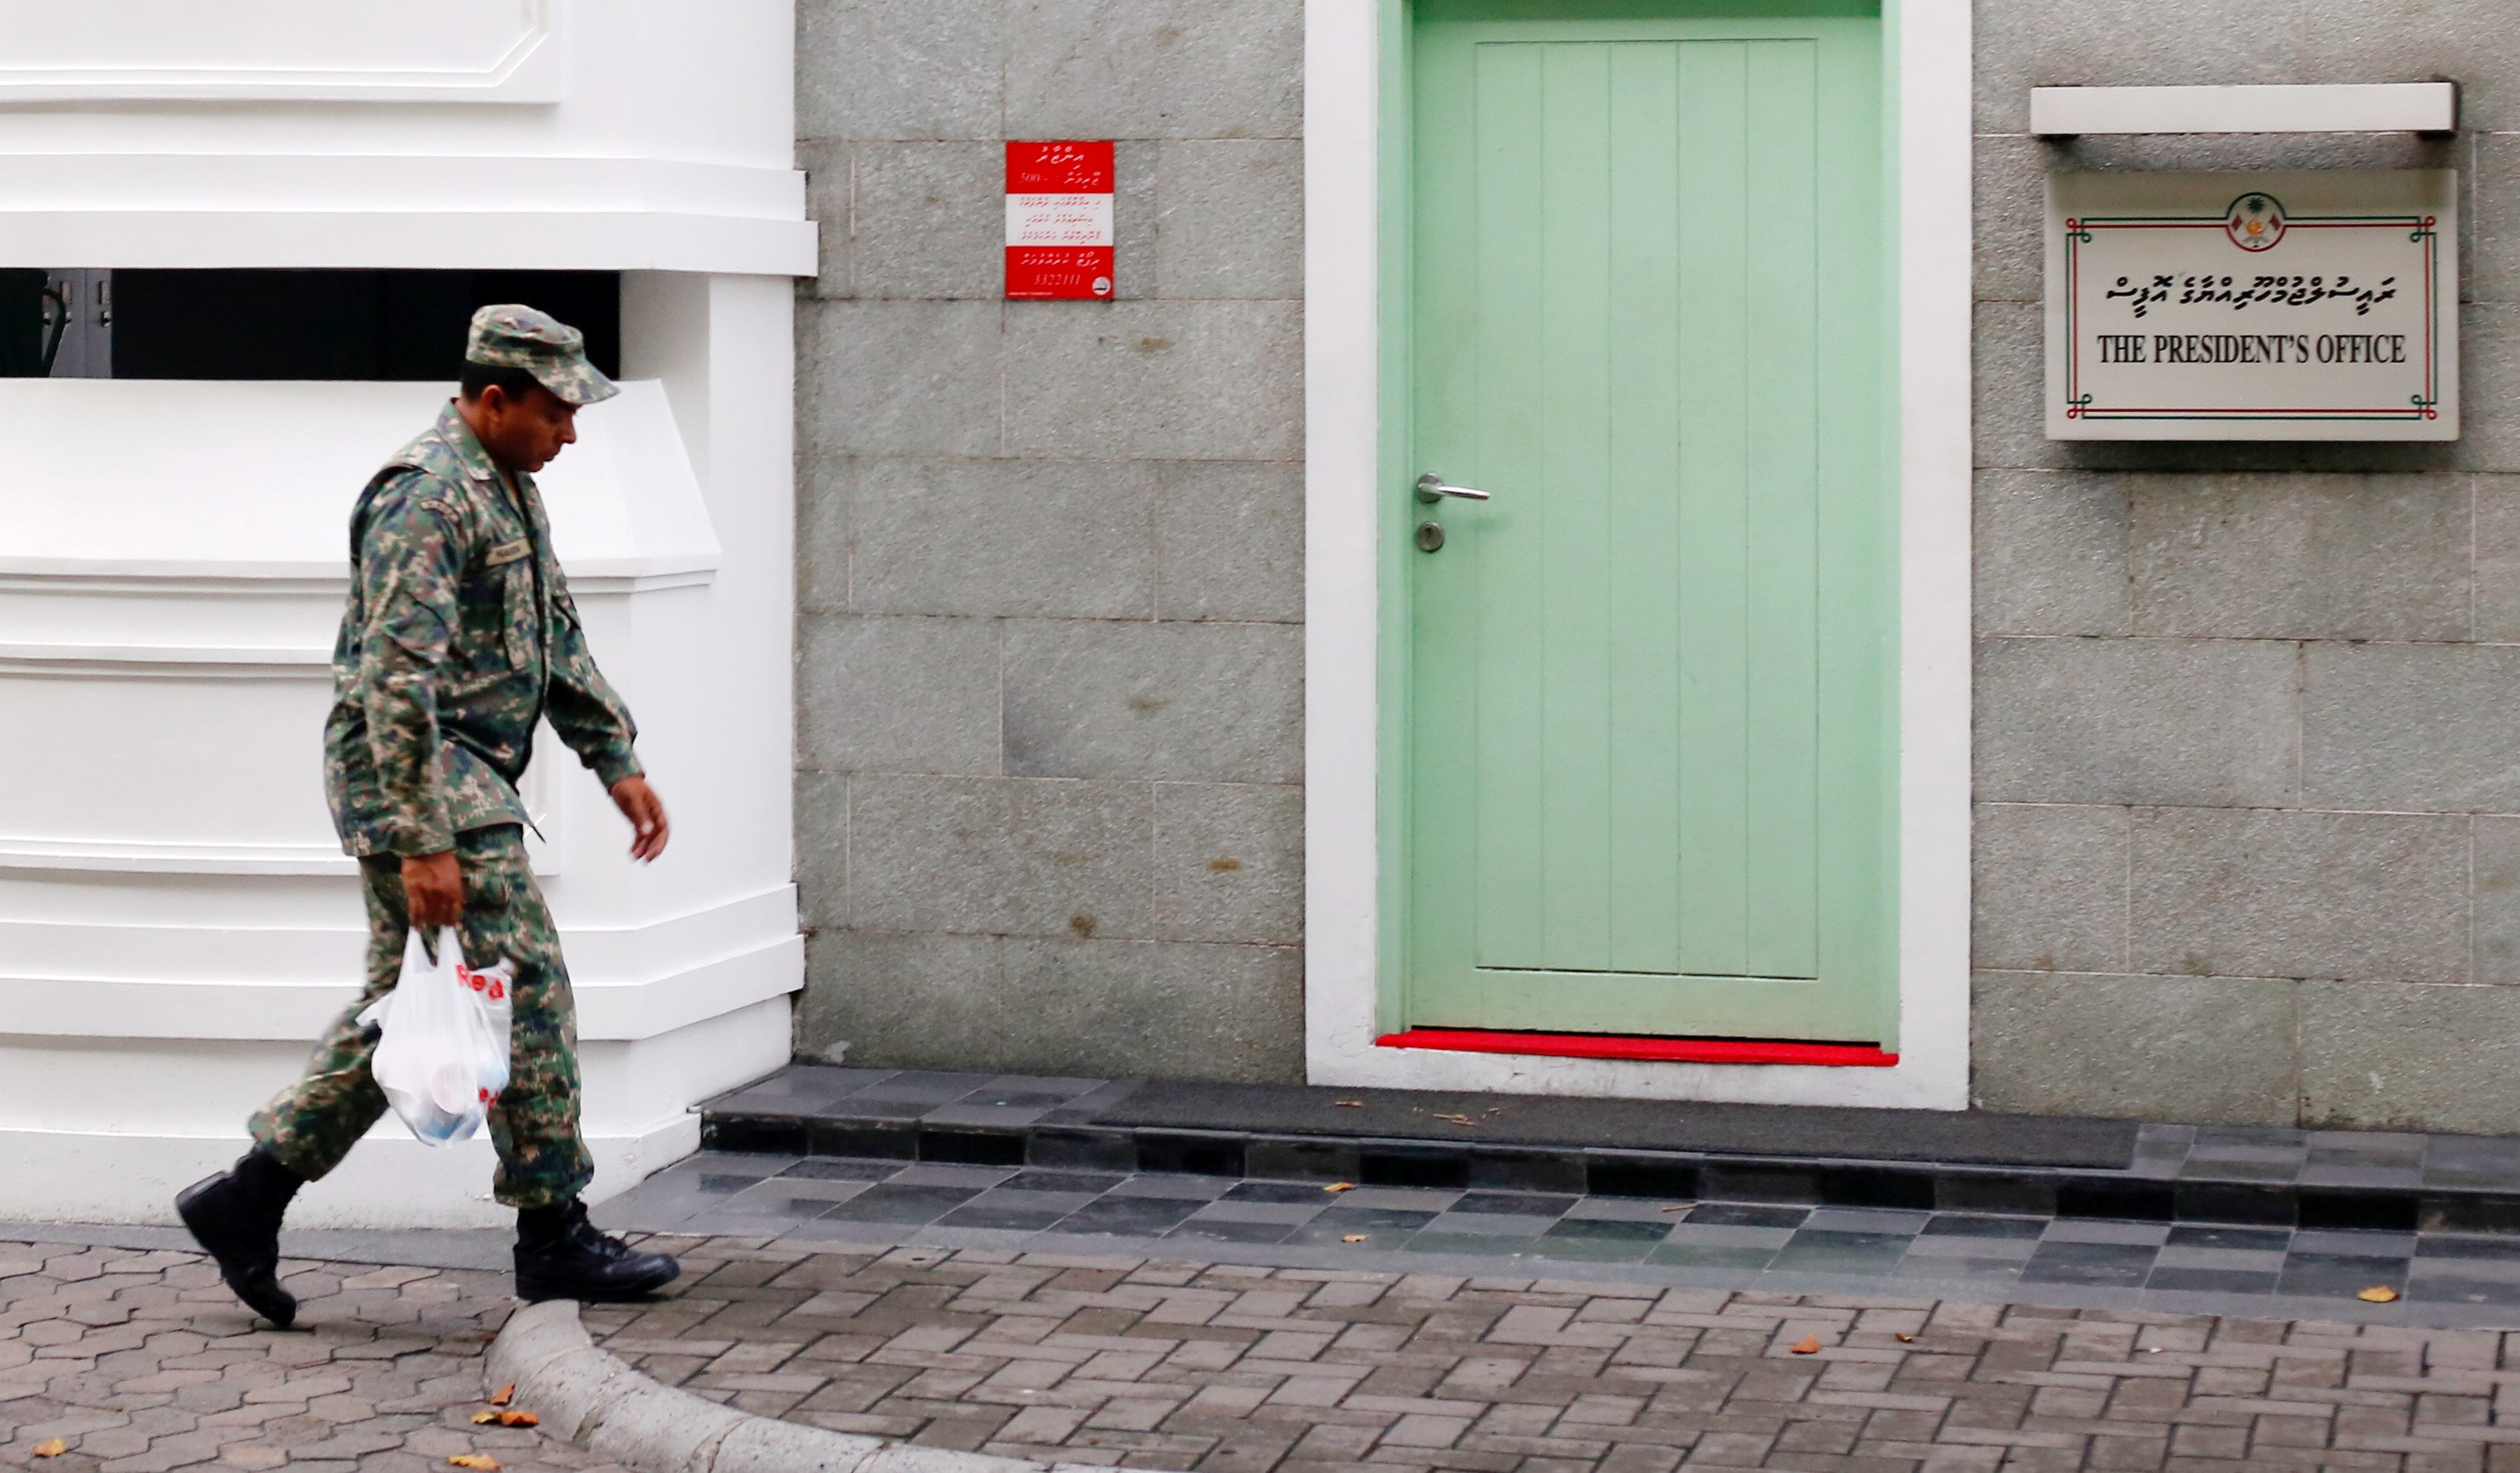 A Maldives National Defence Force soldier walks past the president's office building after Maldives President Abdulla Yameen declared a state of emergency for 15 days, in Male, Maldives February 6, 2018. Credit: Reuters/Stringer